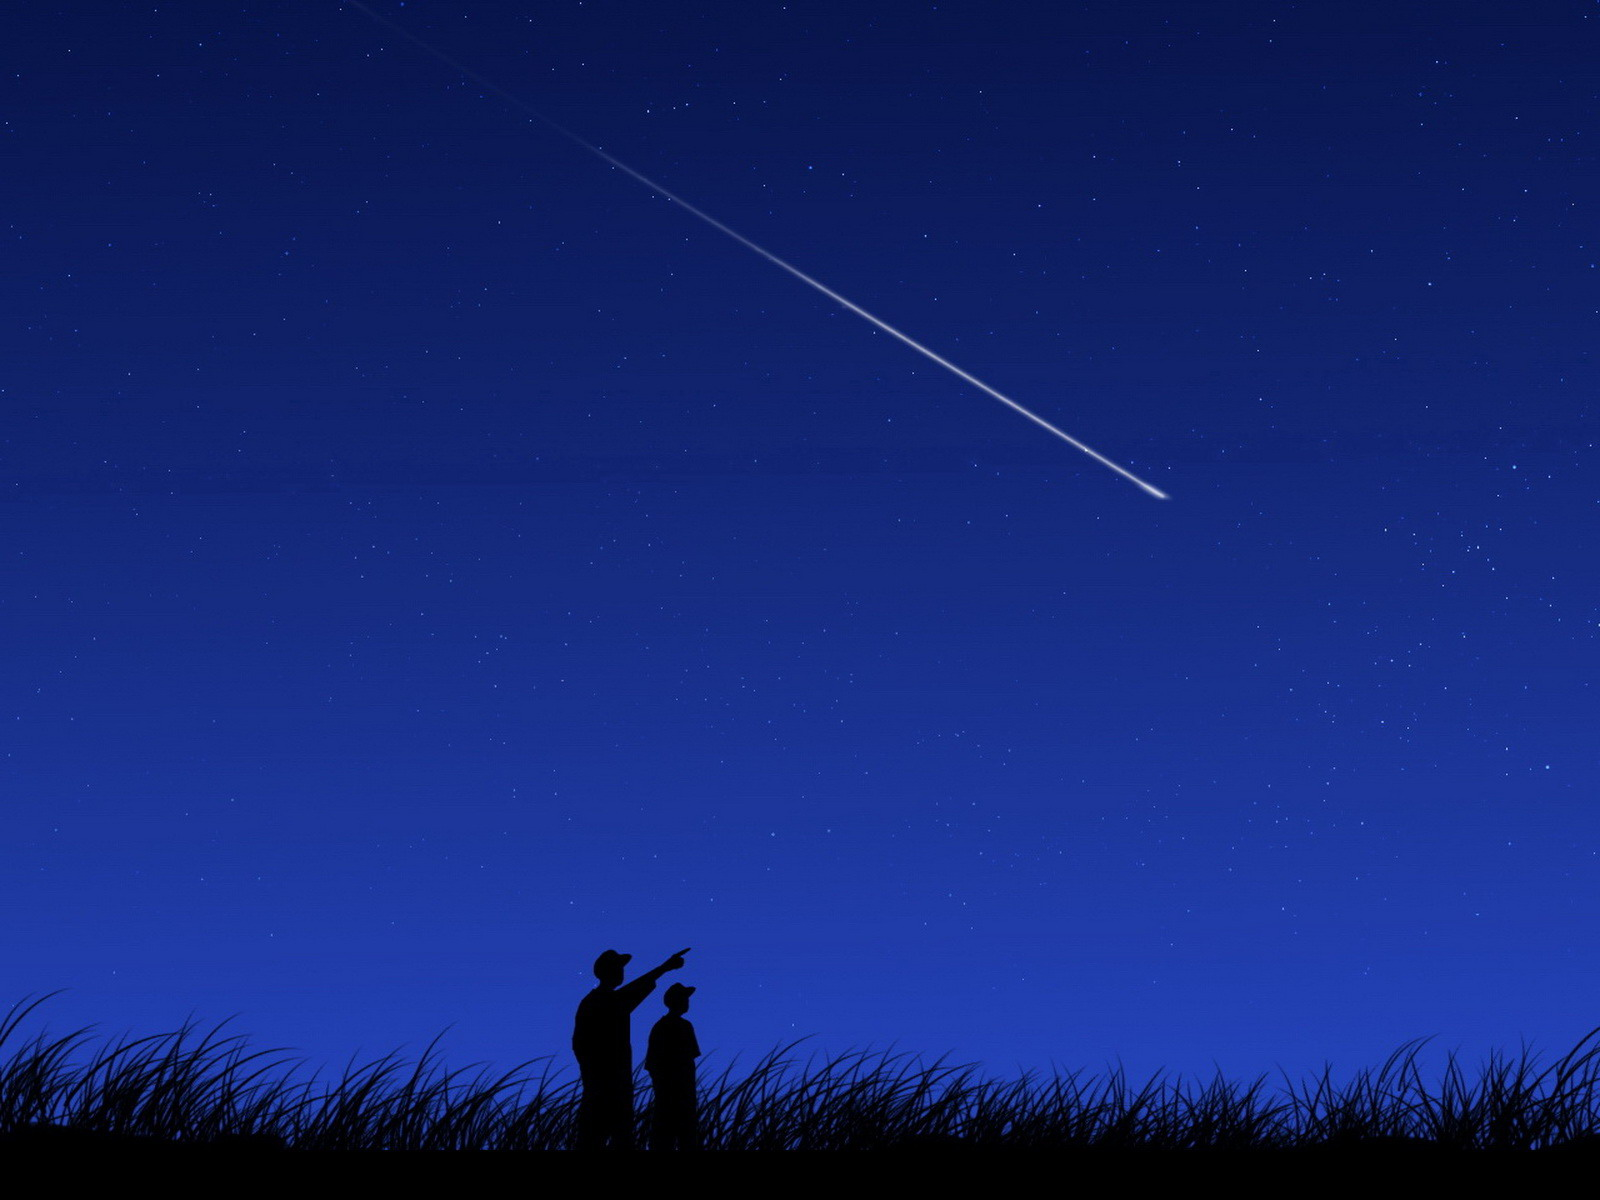 Shooting star wallpapers Shooting star stock photos 1600x1200